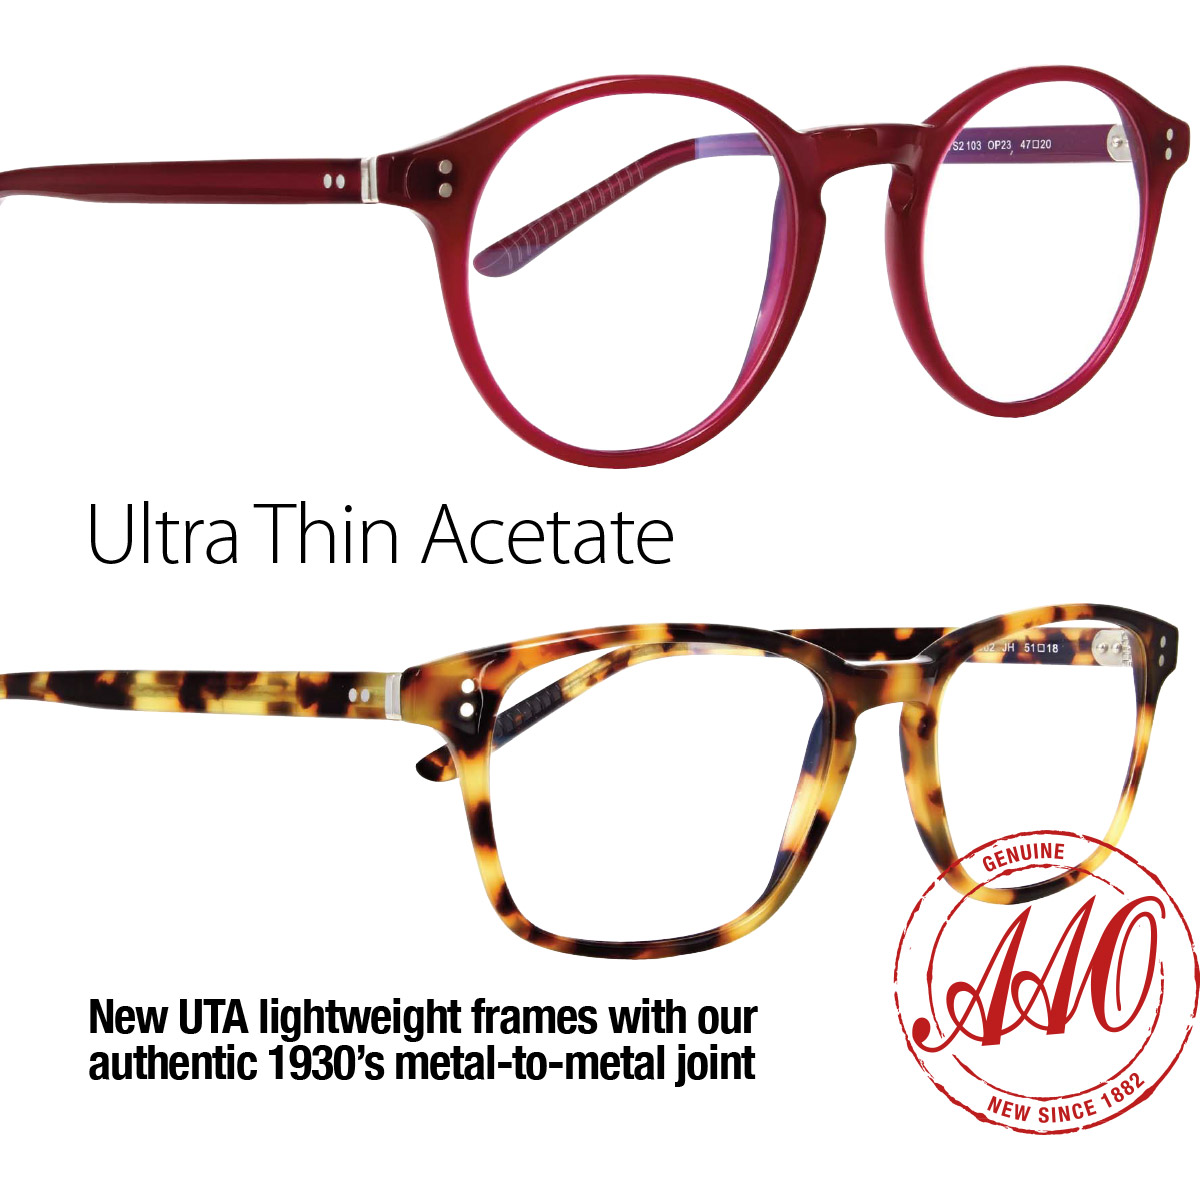 Ultra thin acetate: new UTA lightweight frames with our authentic 1930's metal-to-metal joint.